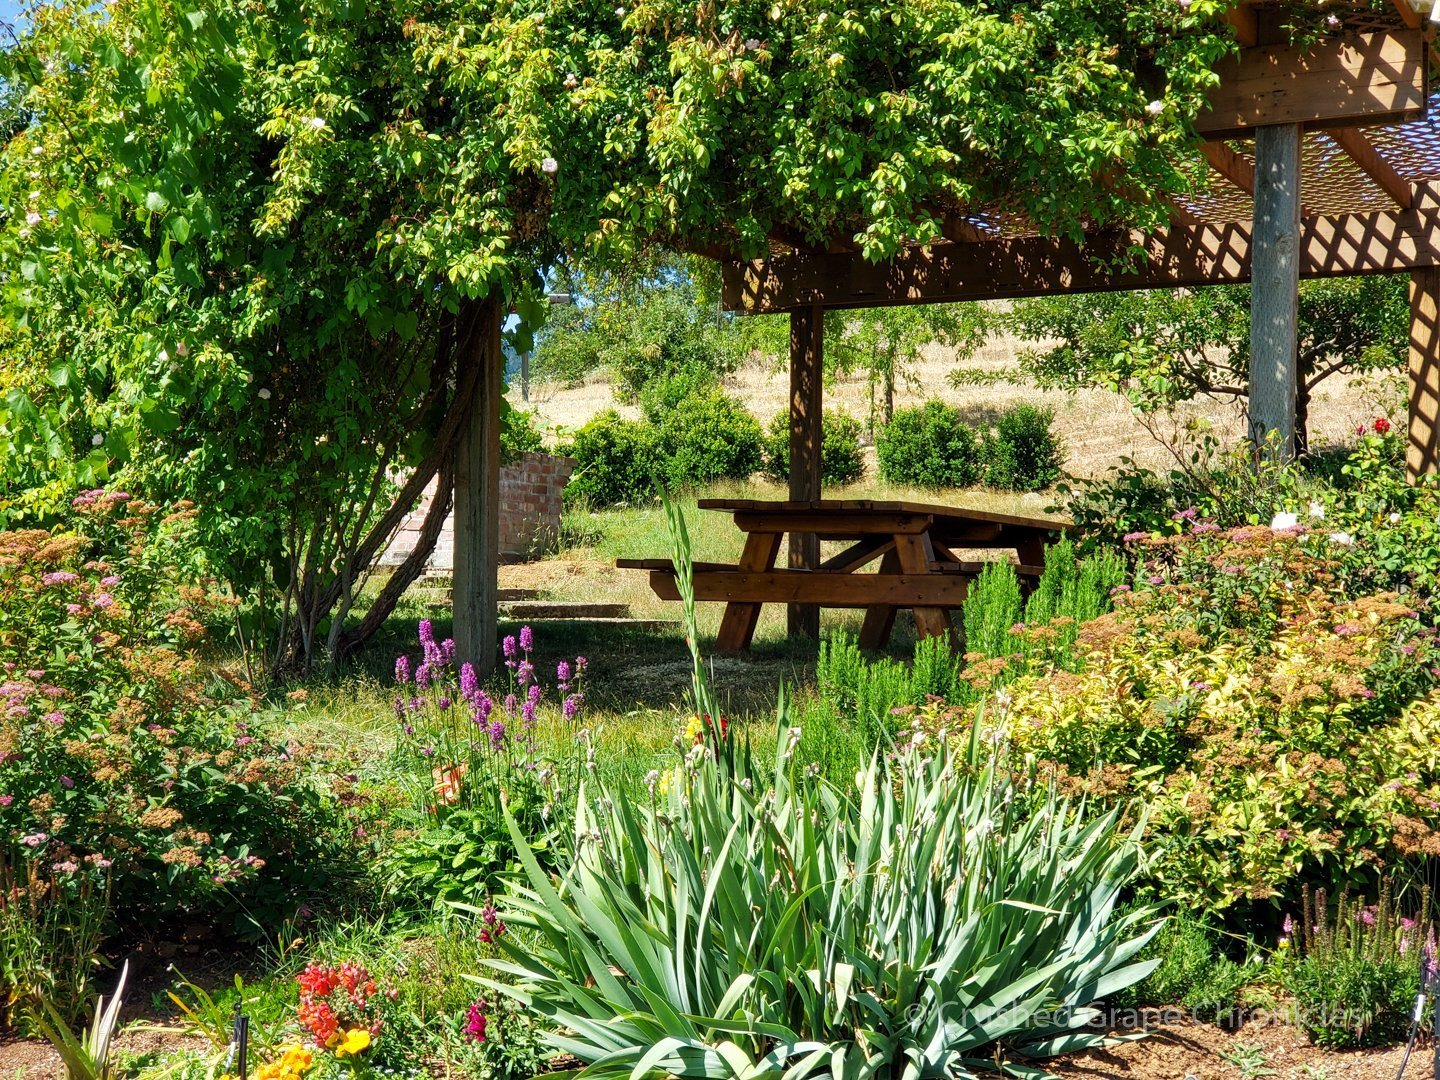 The picnic patio at Girardet